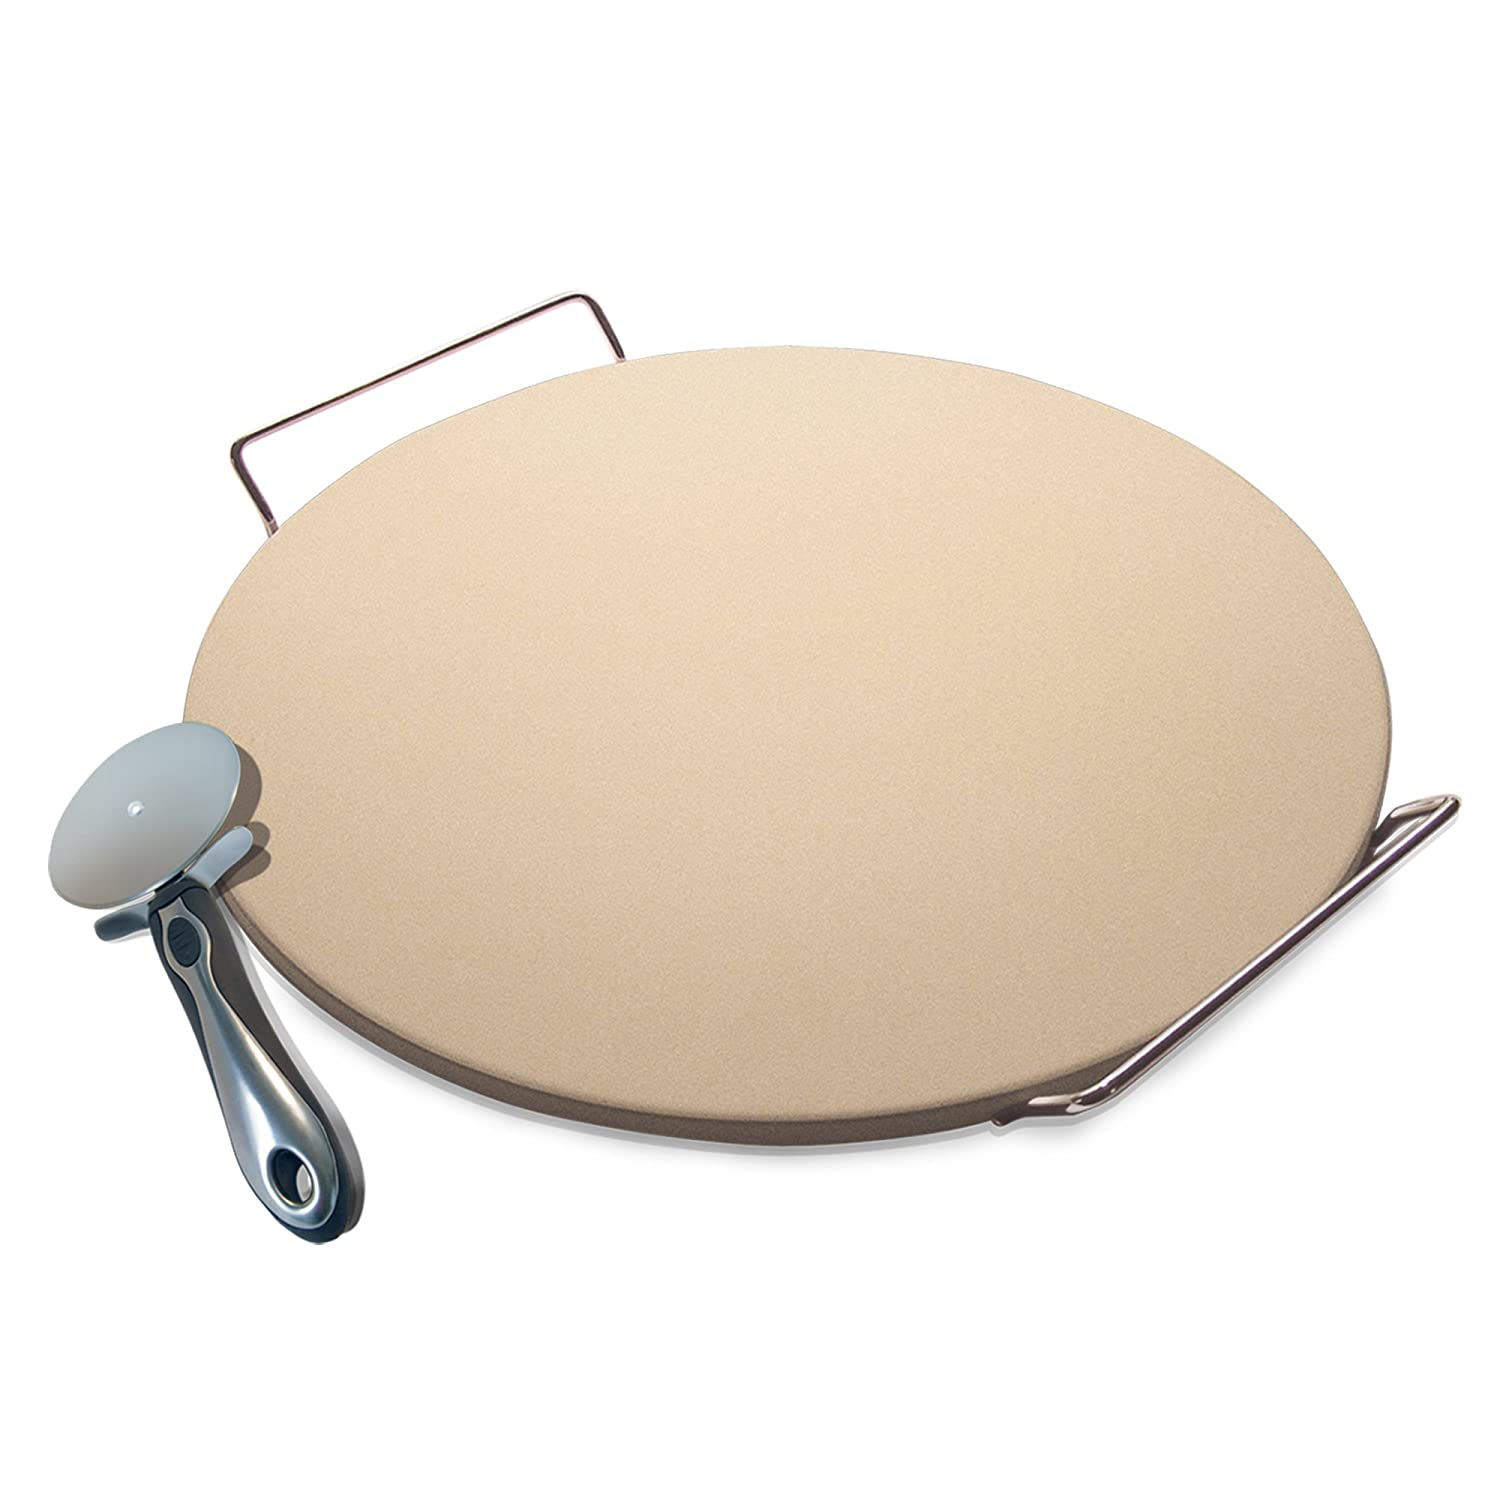 Laroma Pizza Baking Stone Set, 15-Inch - Includes Serving Rack, Pizza Cutter, Recipe Booklet